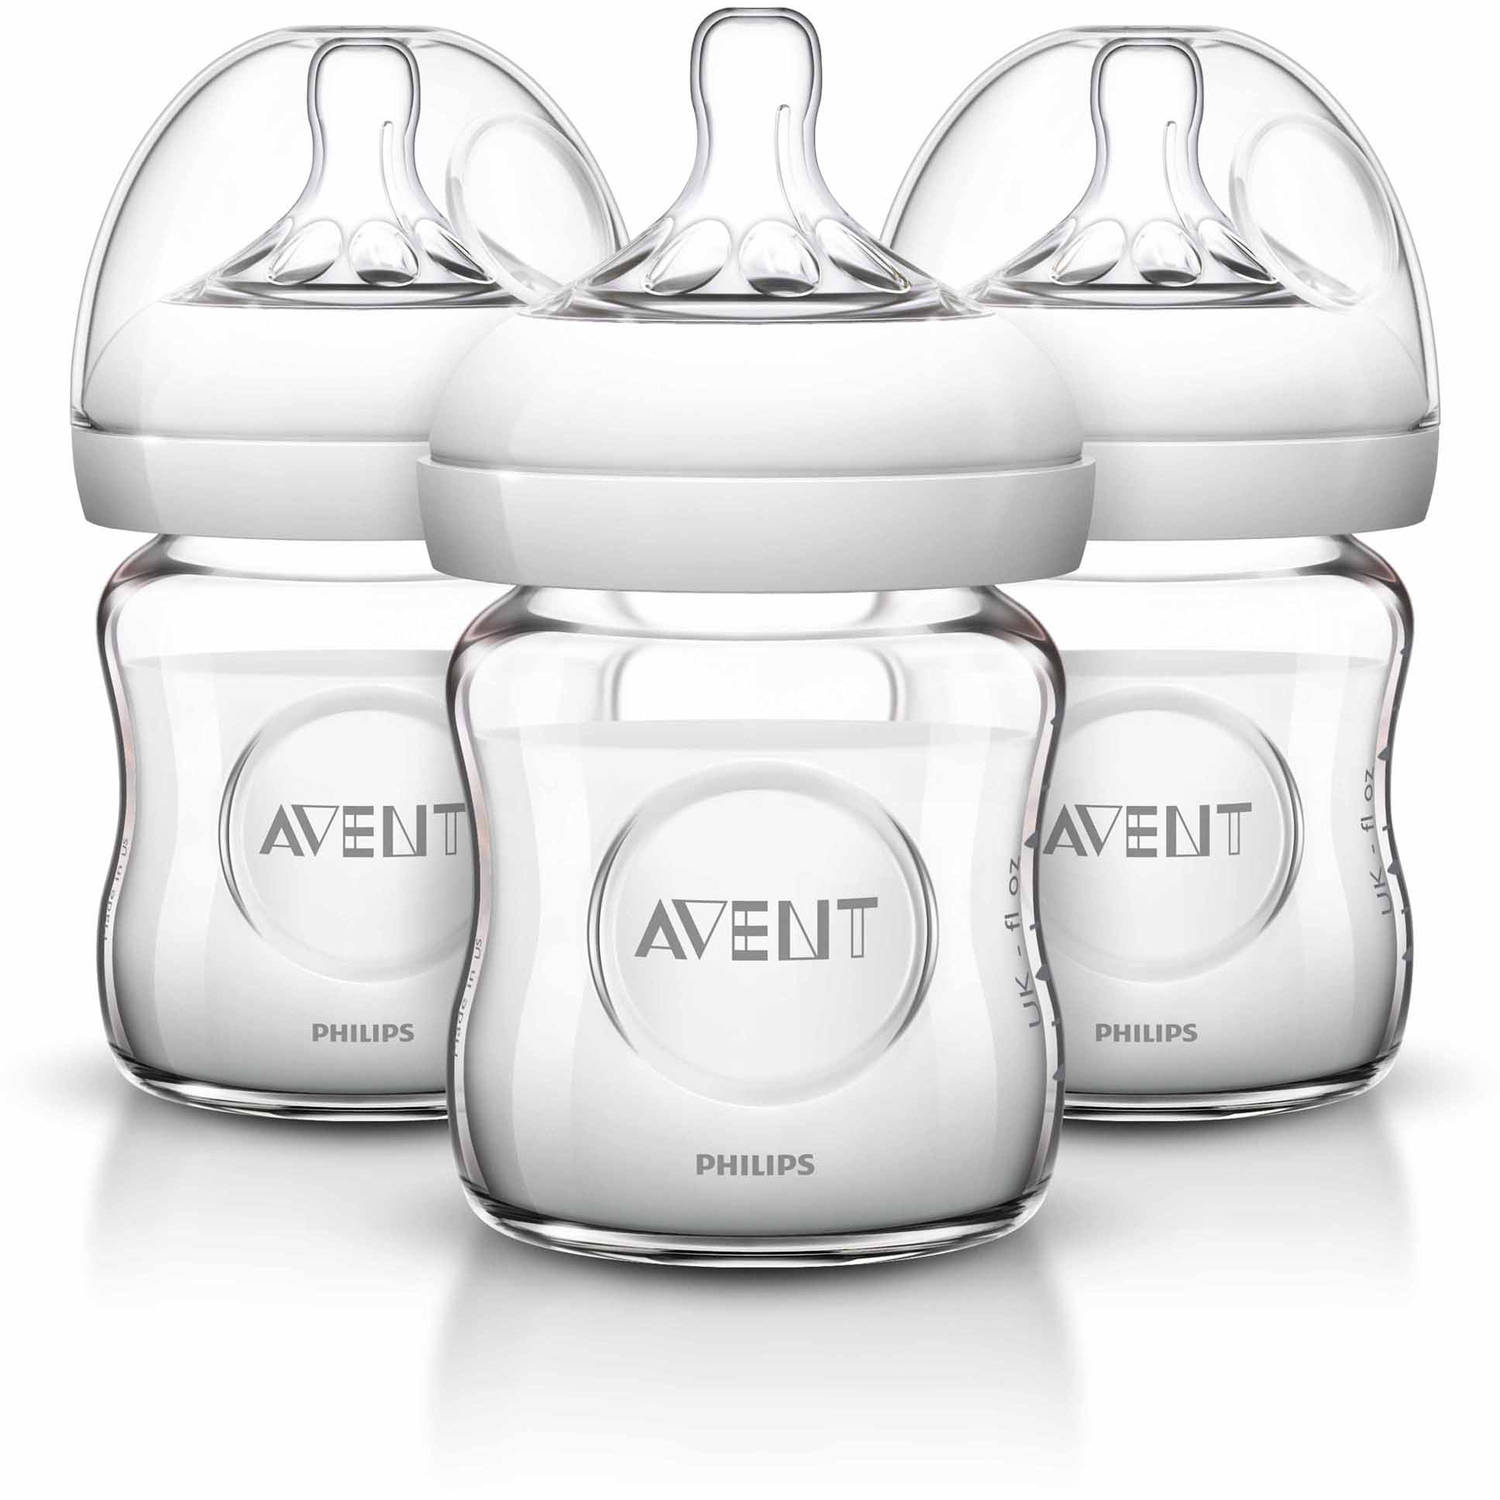 Philips Avent BPA Free Natural Clear Glass Baby Bottles, 4 Ounce, 3 Pack